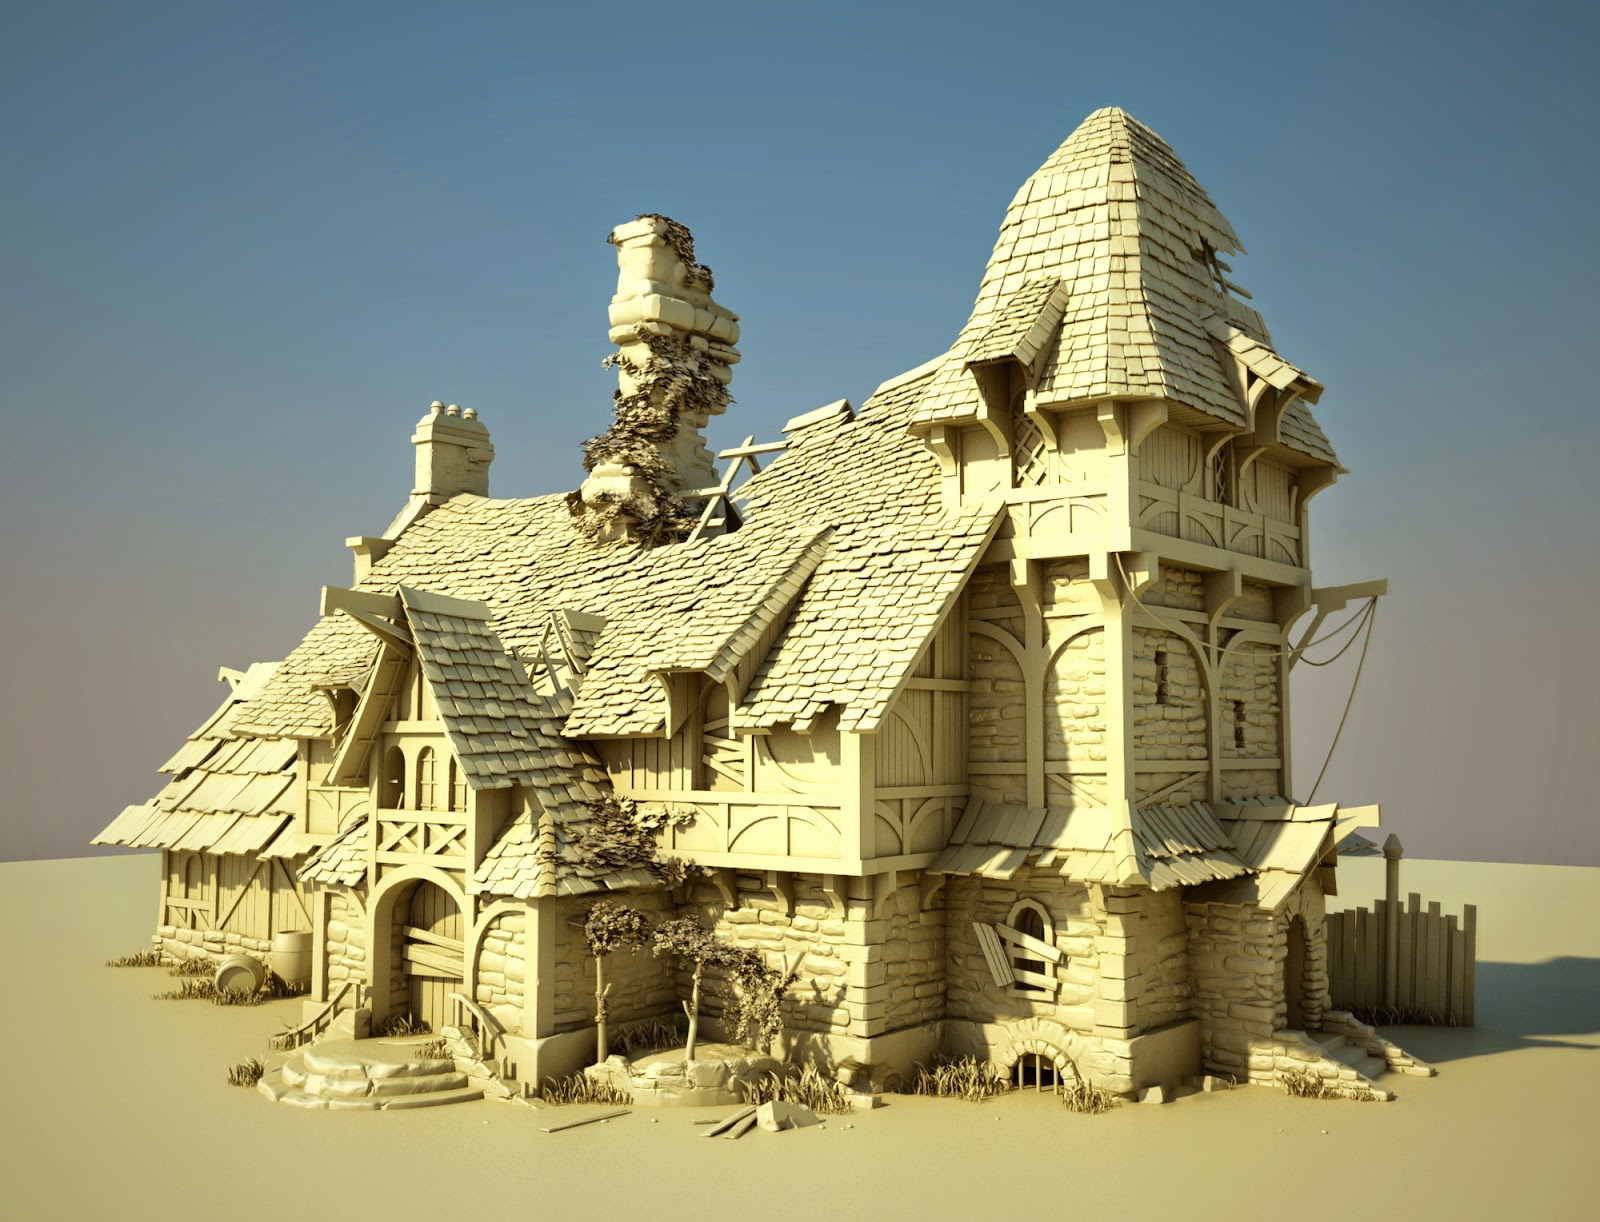 The Art Blog of Toby Lewin: Environment Modeling